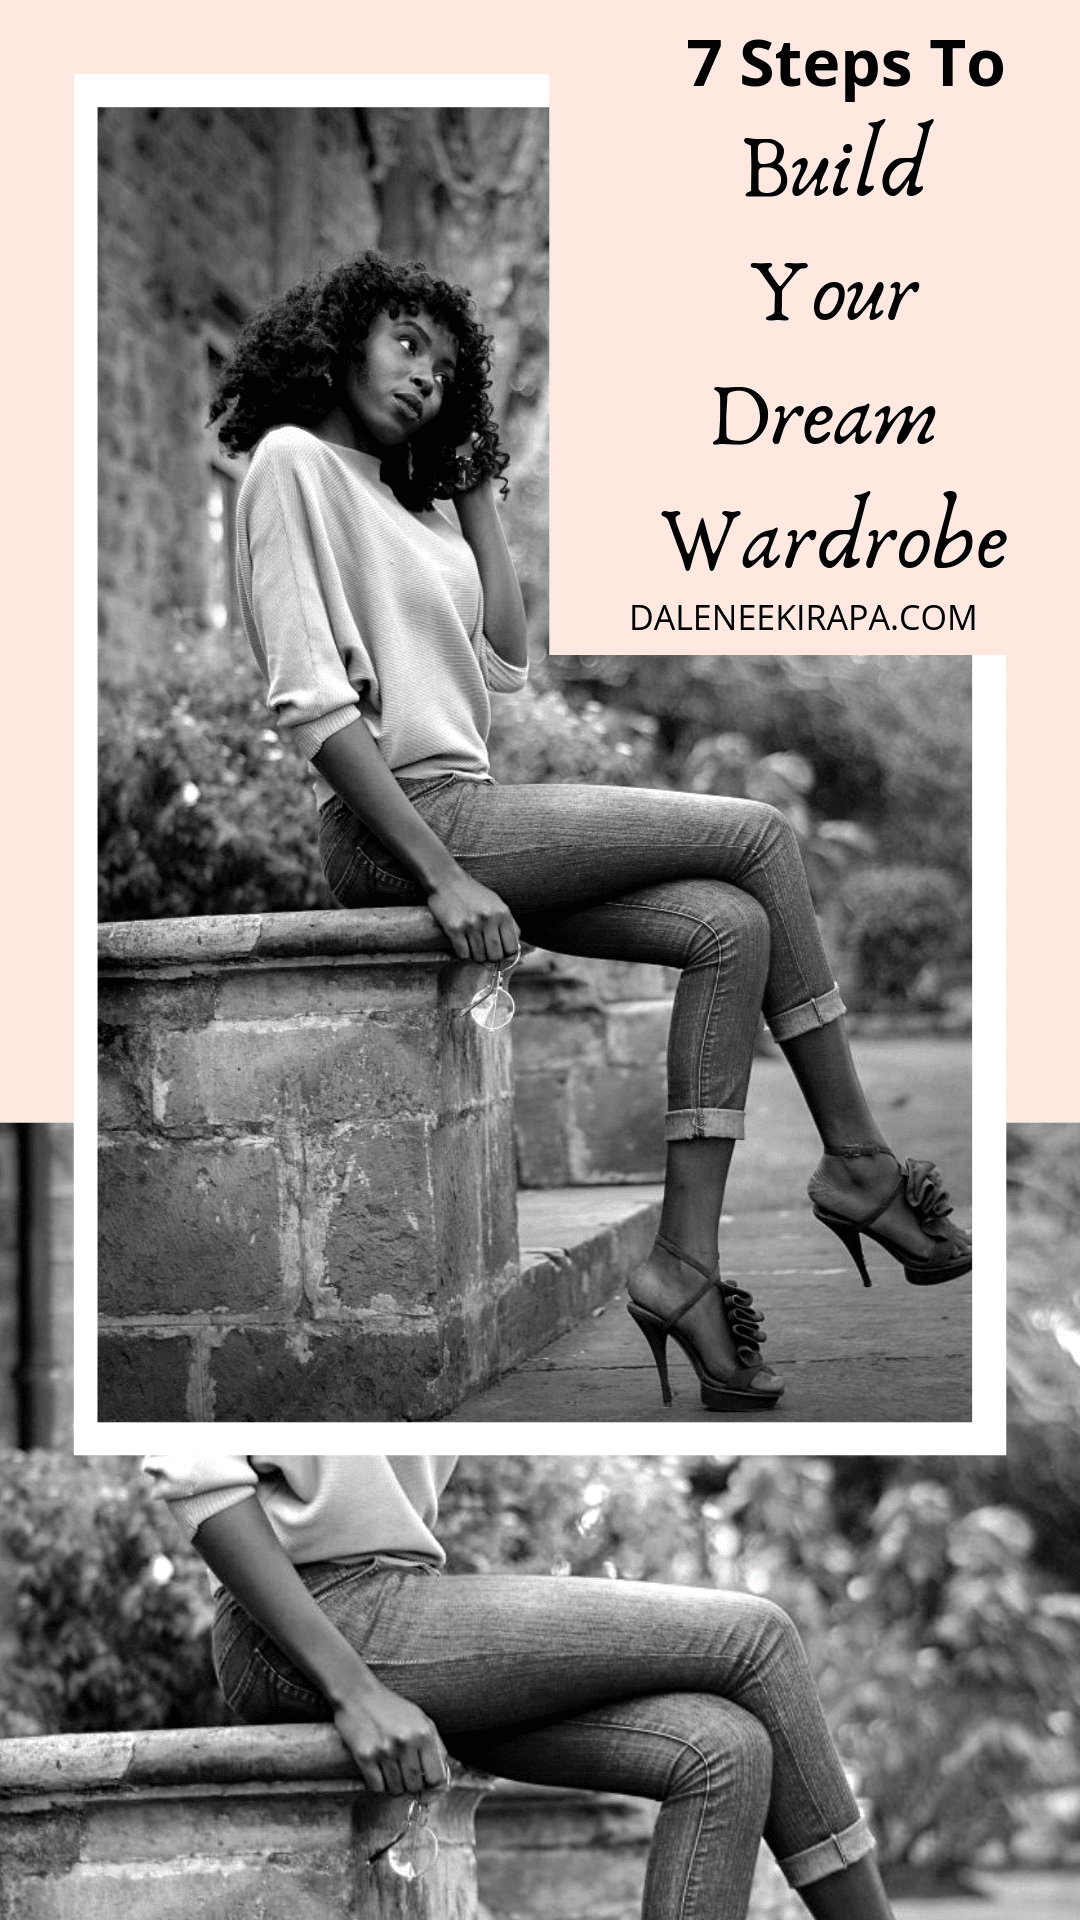 7 Steps to build your dream wardrobe